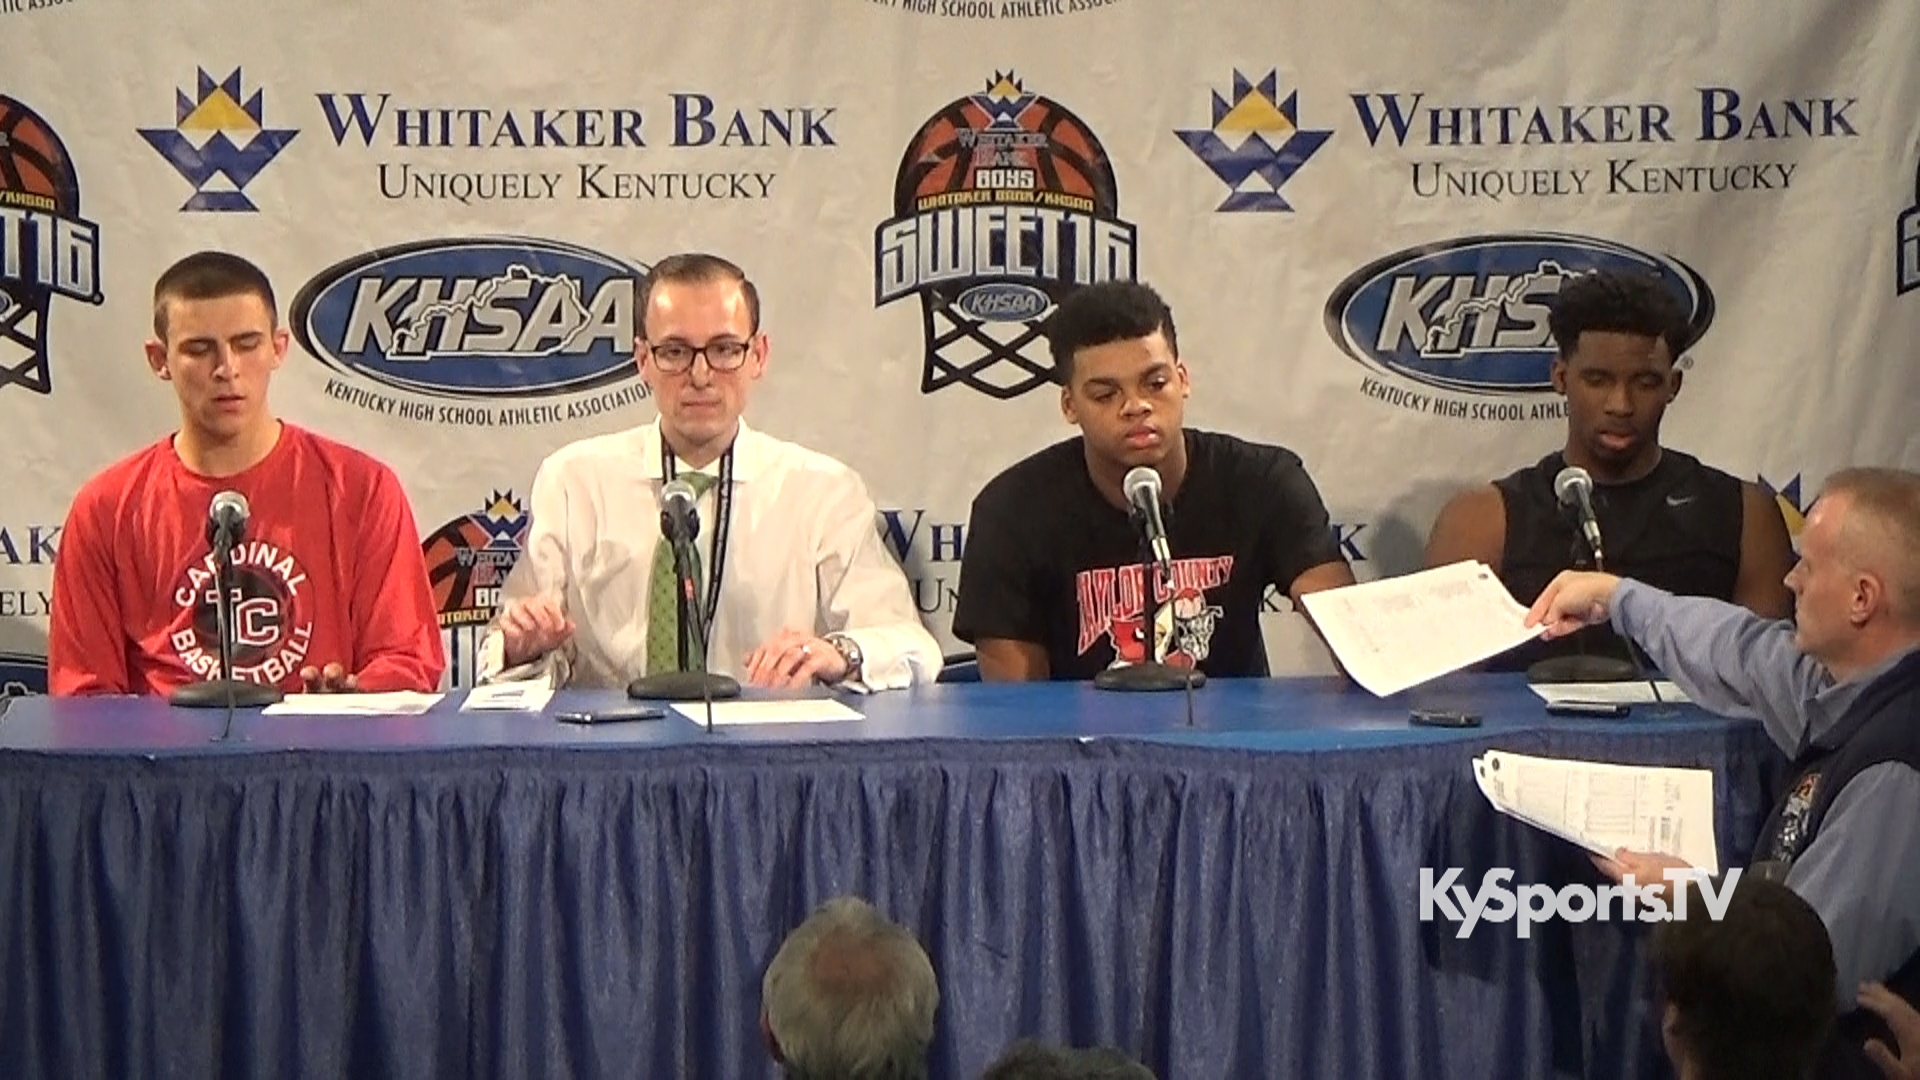 Press conference at 2016 sweet 16